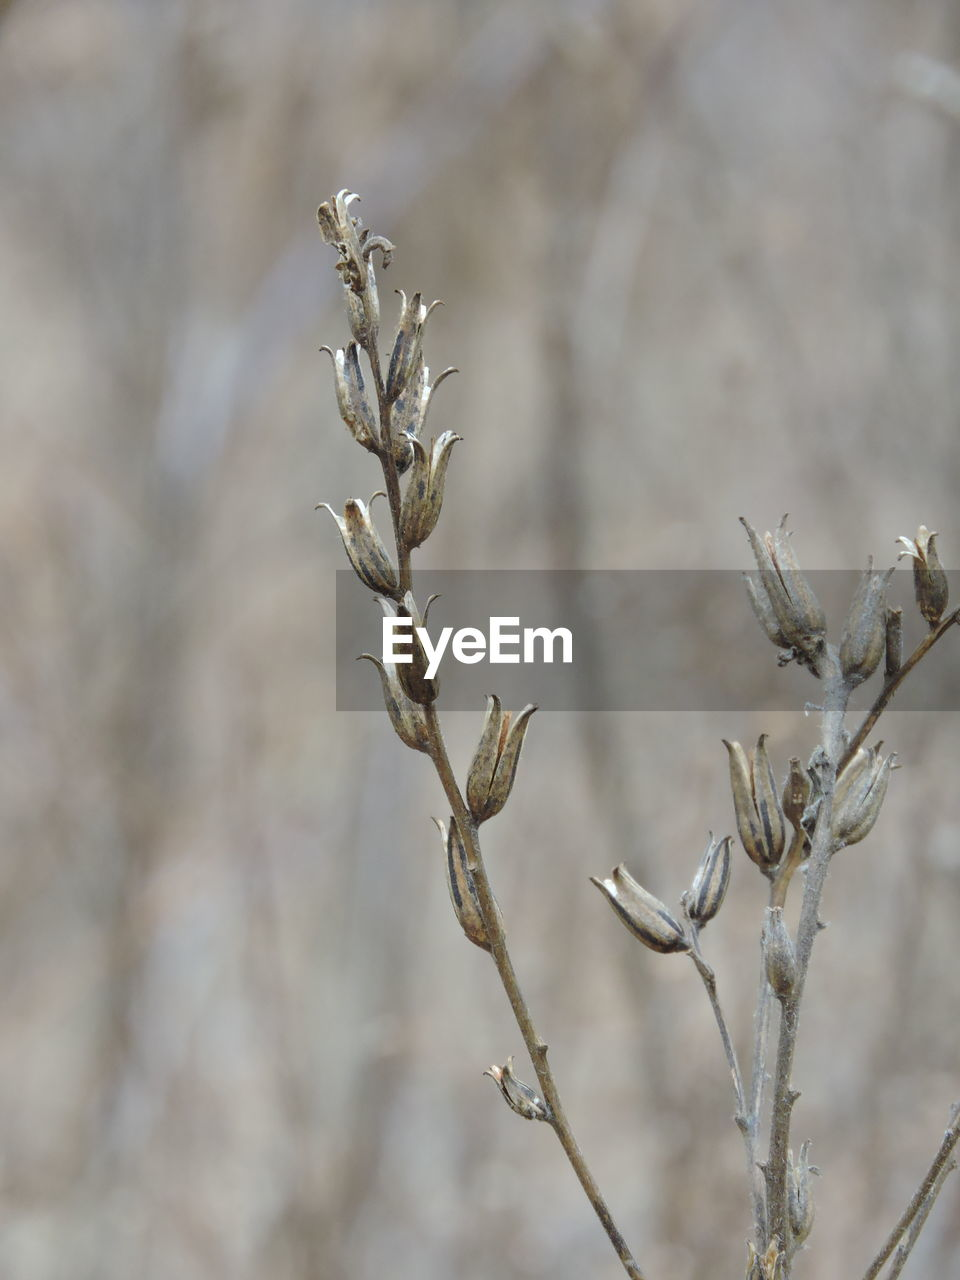 dead plant, nature, day, dried plant, plant, no people, outdoors, branch, growth, beauty in nature, close-up, fragility